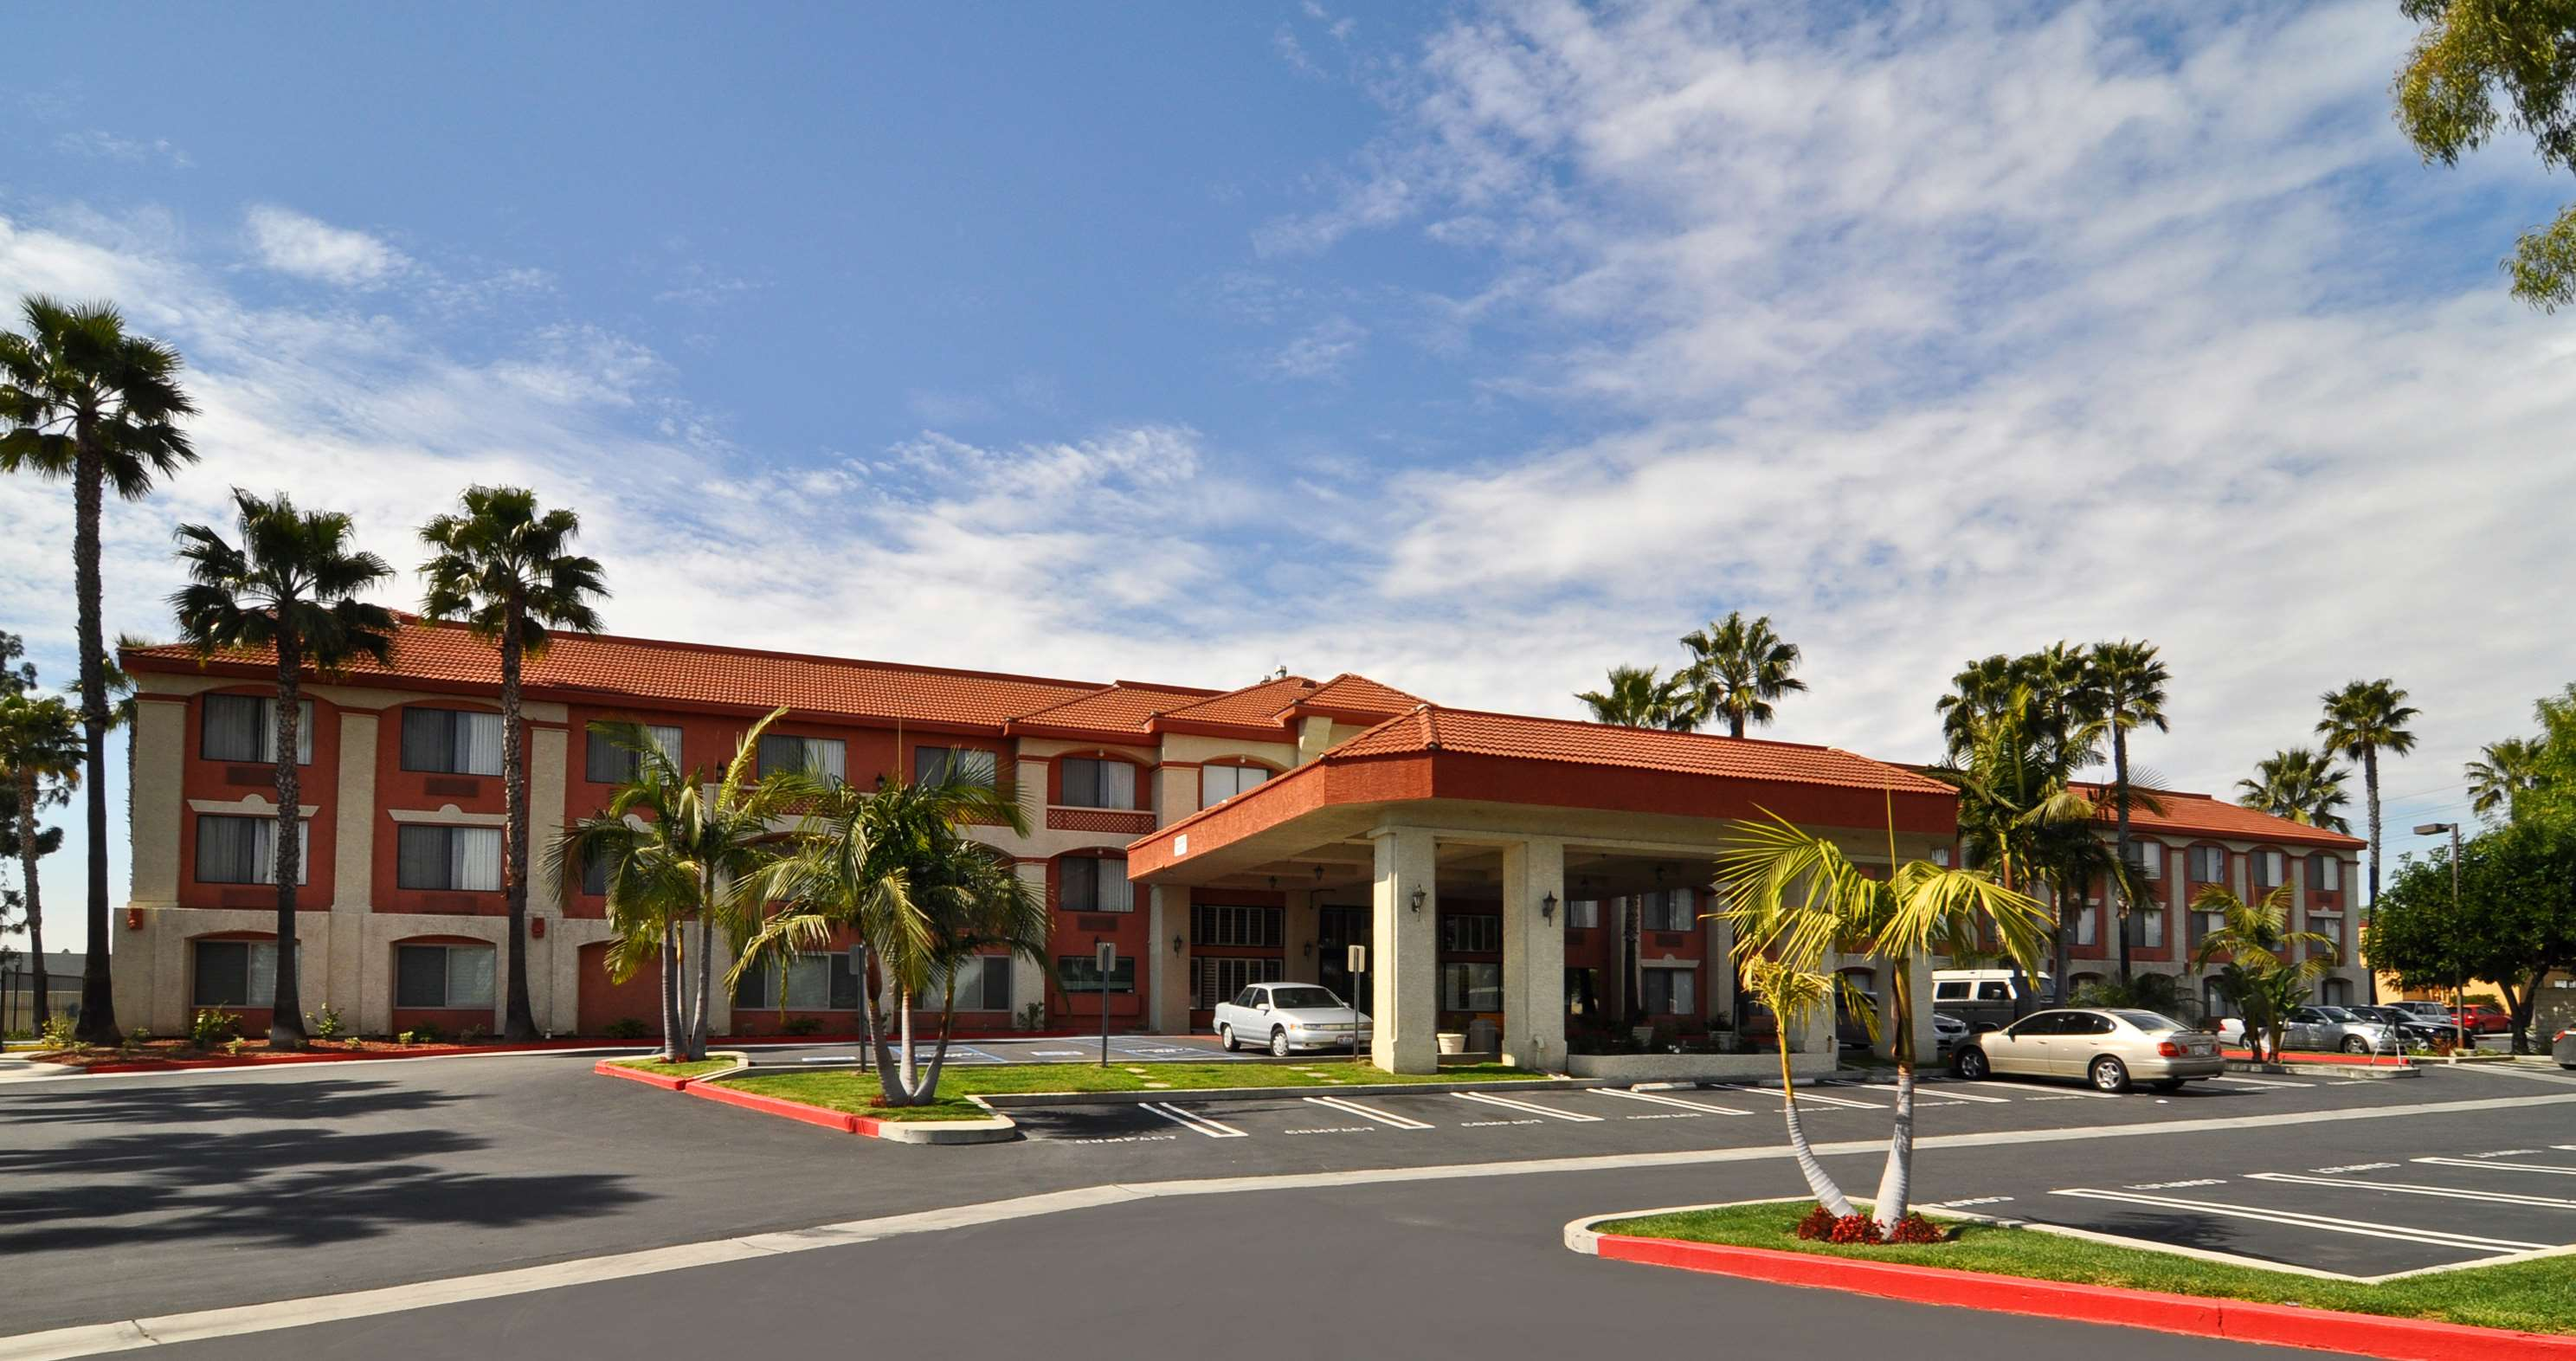 Each Best Western® branded hotel is independently owned and operated. Best Western and the Best Western marks are service marks or registered service marks of Best Western International, Inc.© Best Western International, Inc.